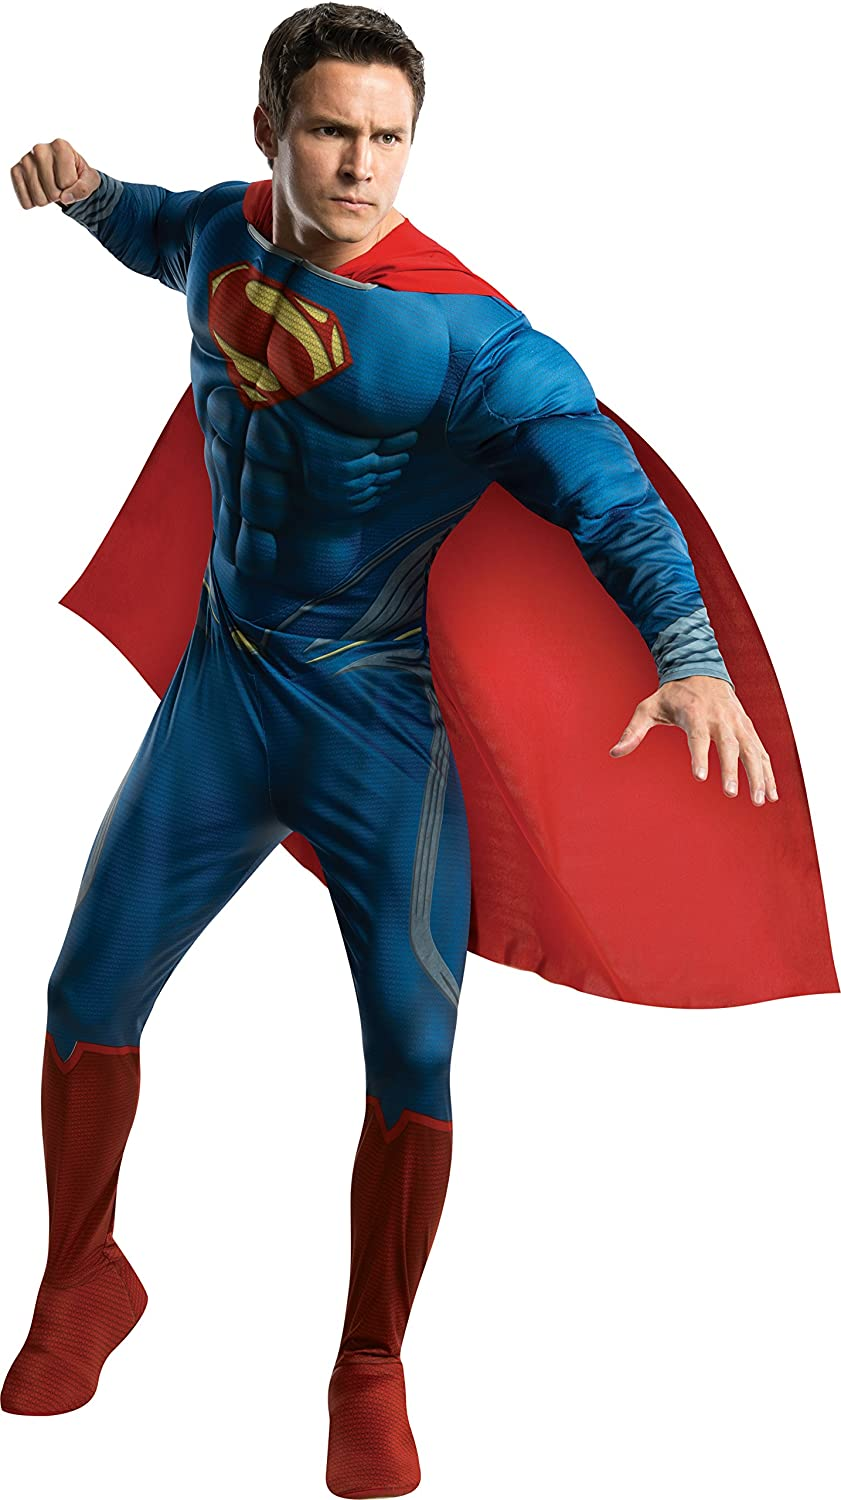 Rubie's Costume Man Of Steel Deluxe Adult Muscle Chest Superman Costume 81wpUvlelVL